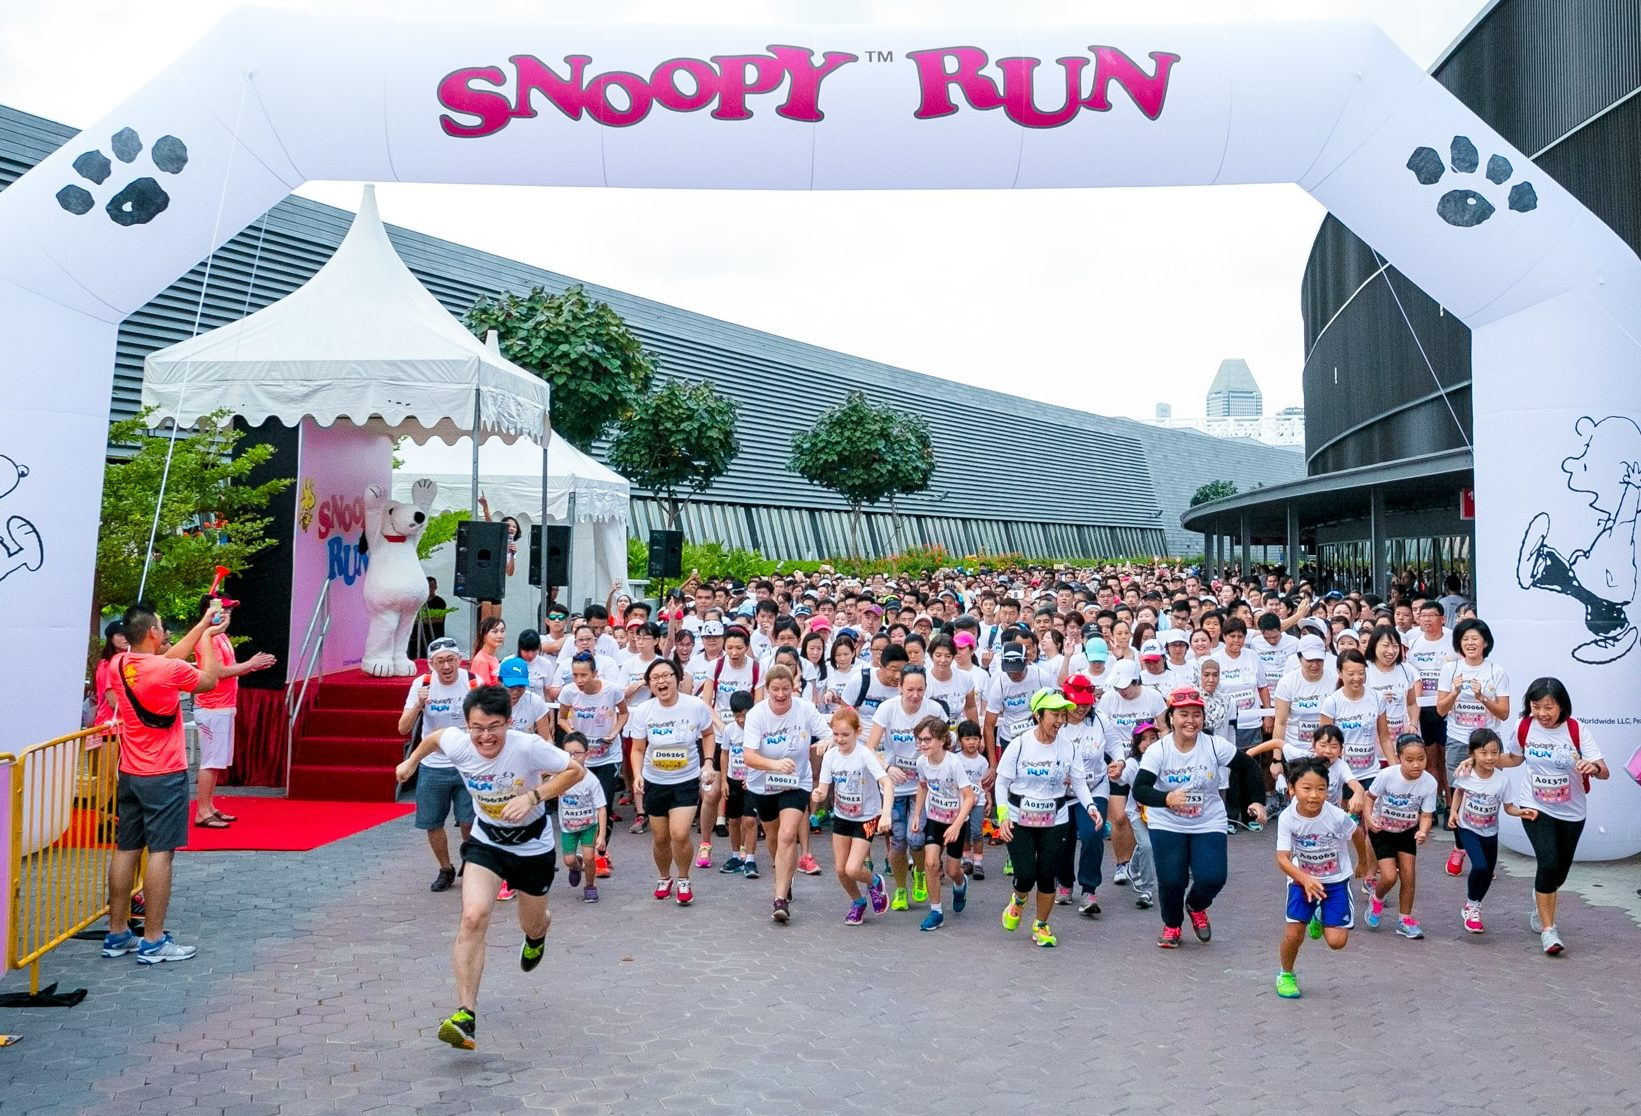 160424 Snoppy Run Highlights-9 - Copy